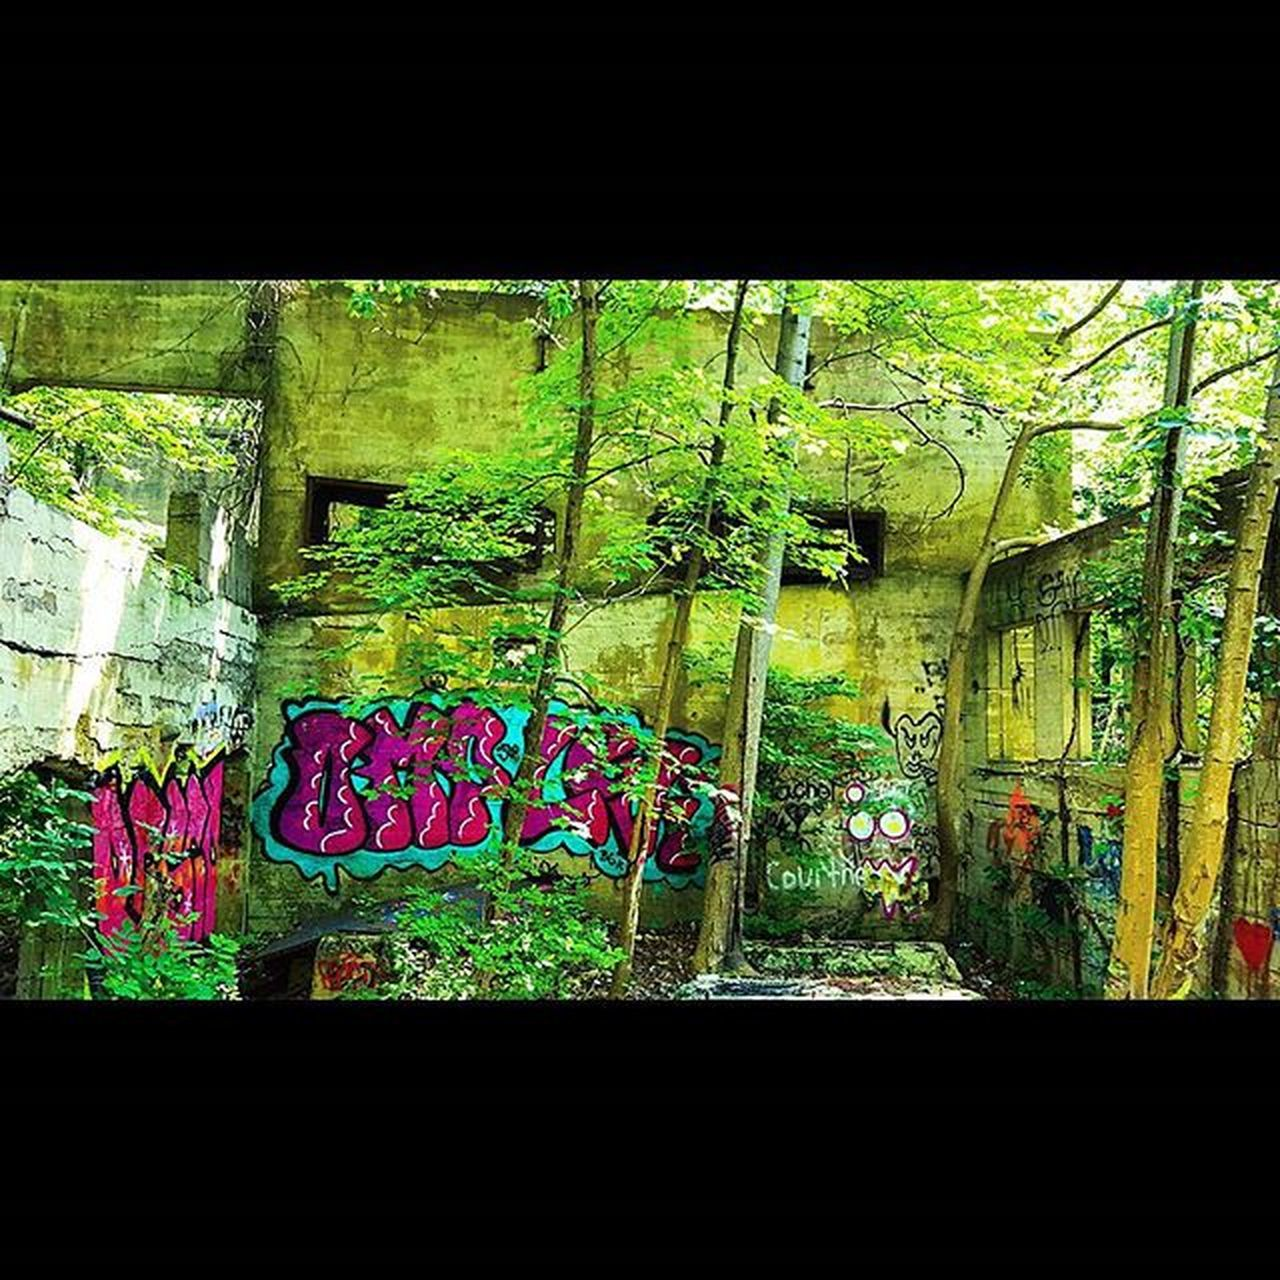 Take me back to this place. Kelleymediaproductions Art Abandoned Abandonedbuilding Graffiti Trees Nature Naturephotography Hiking Hikingphotography Photography Photographersofinstagram Color Colorphotography Stayrad